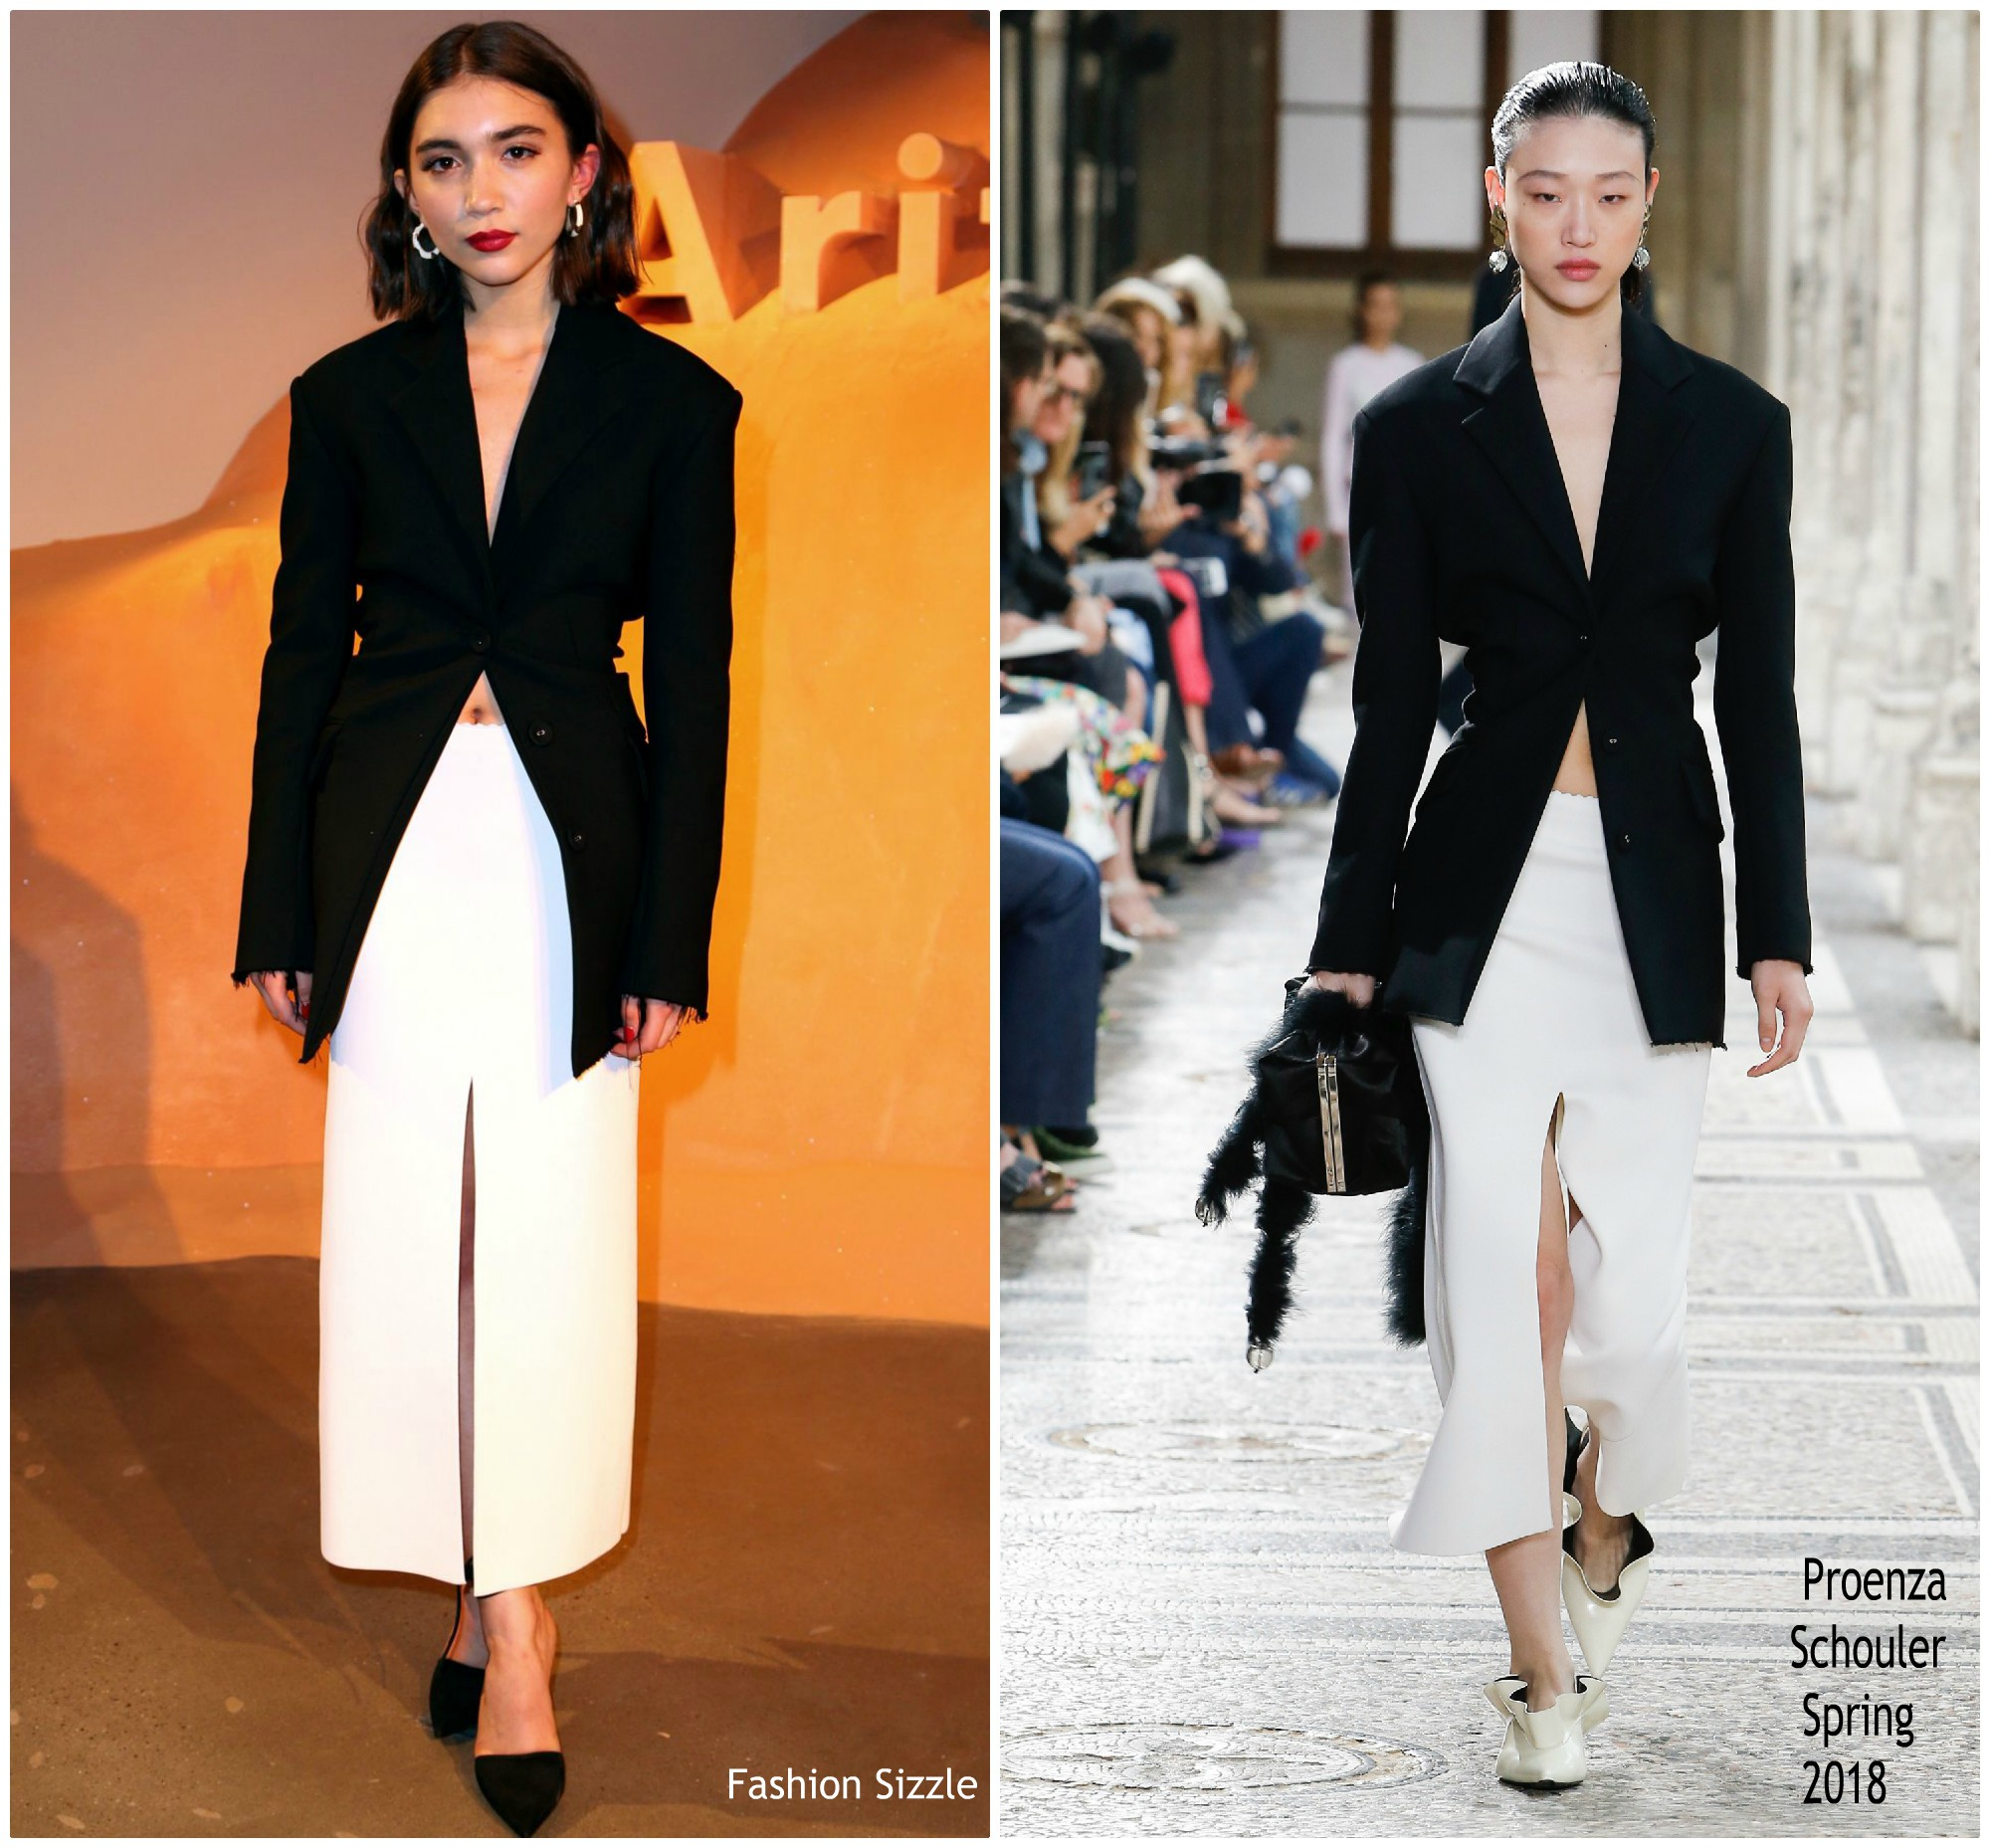 rowan-blanchard-in-proenza-schouler-arizona-fragrance-party-in-new-york